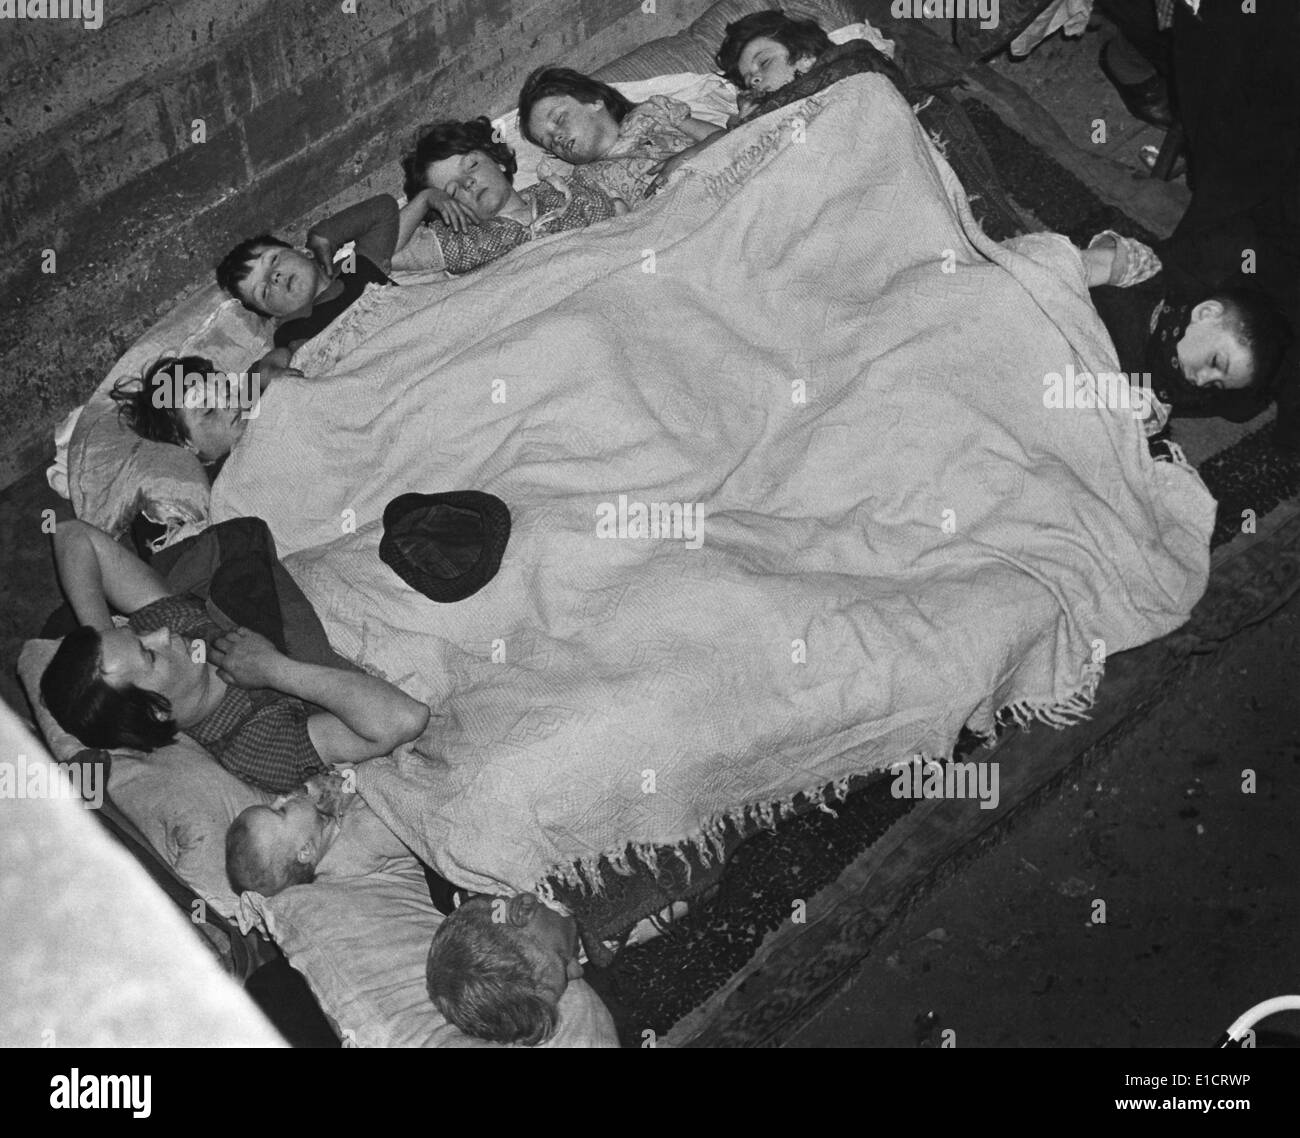 World War 2, Battle of Britain. A woman and eight children share a blanket in a southeast London subway station bomb shell - Stock Image